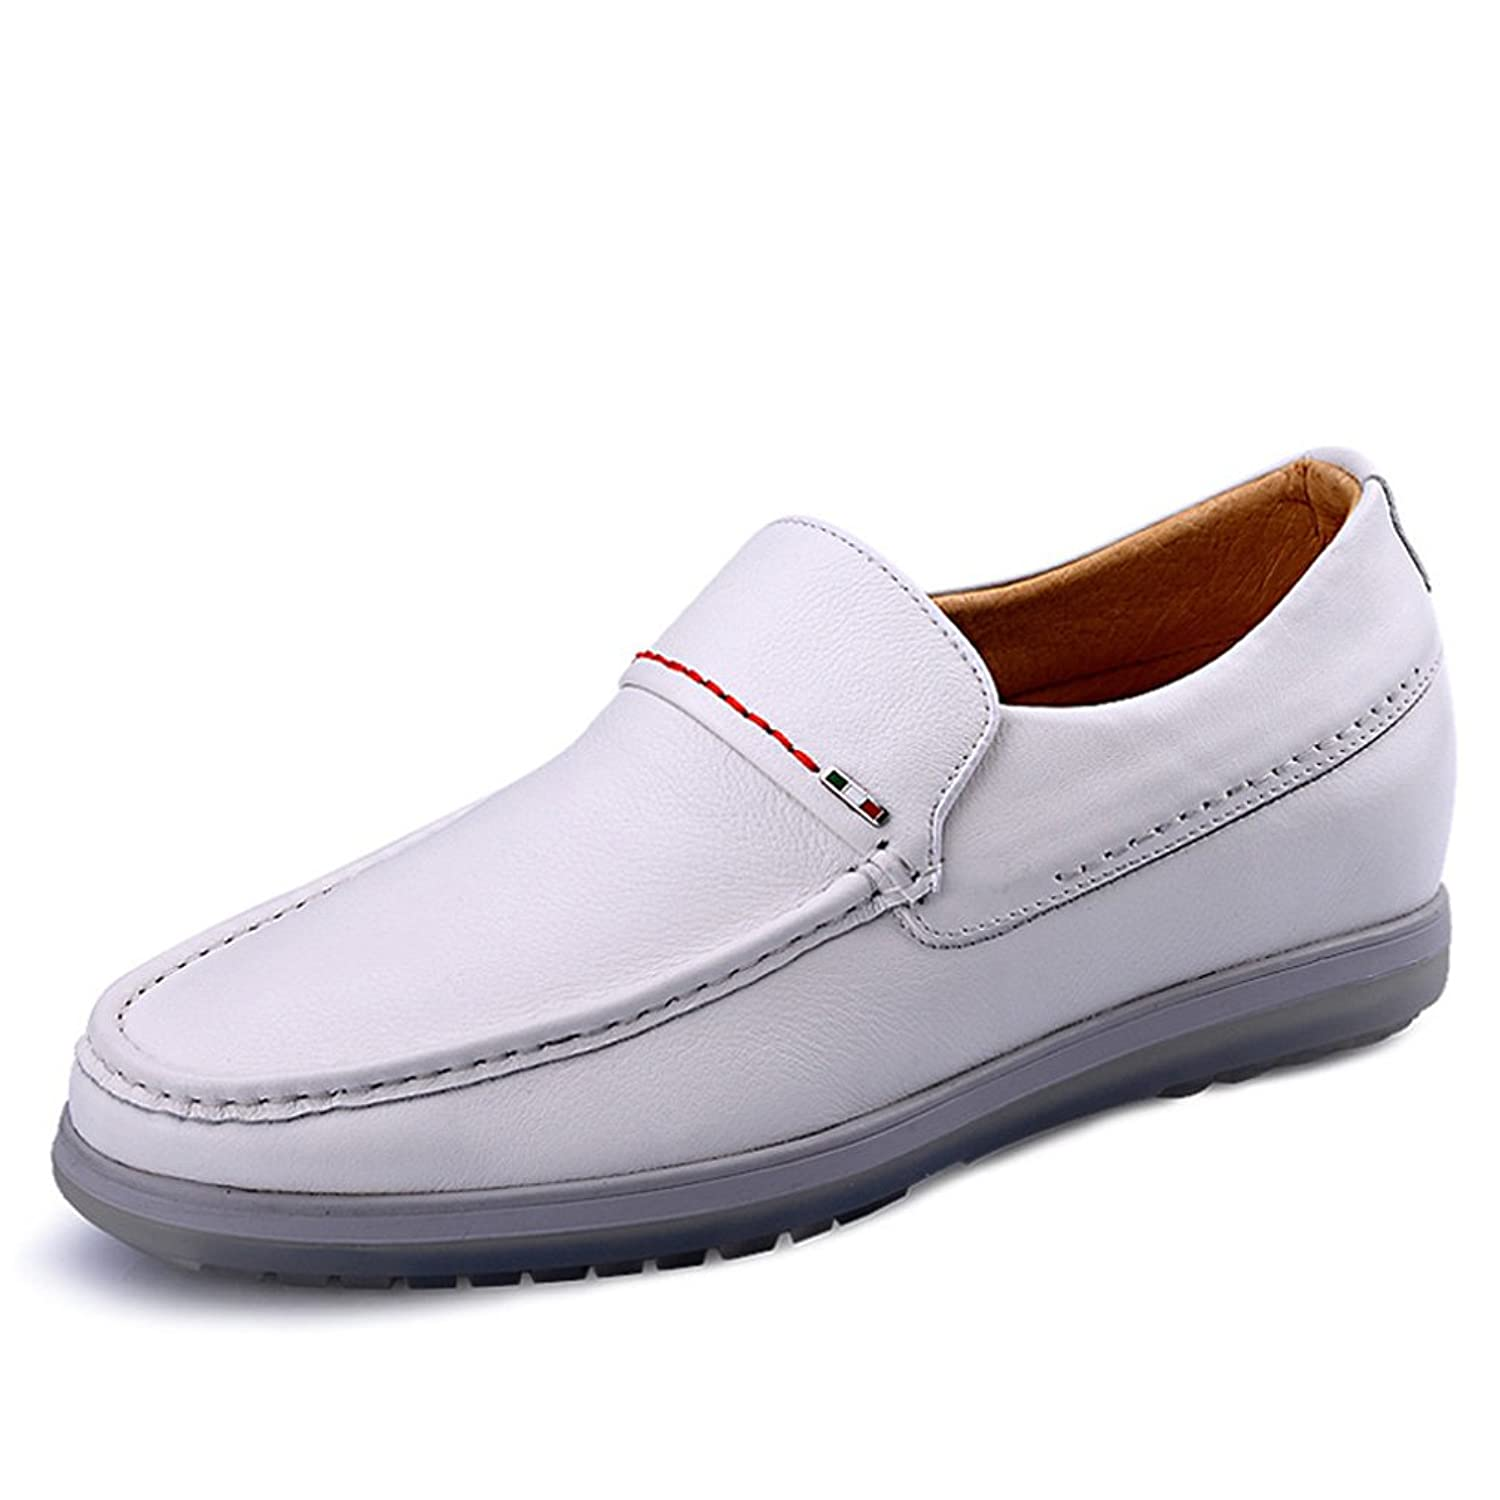 2.36 Inches Taller-Men's Comfort Driving Car Shoes Soft Leather Flats Loafers Casual Walking Shoes White